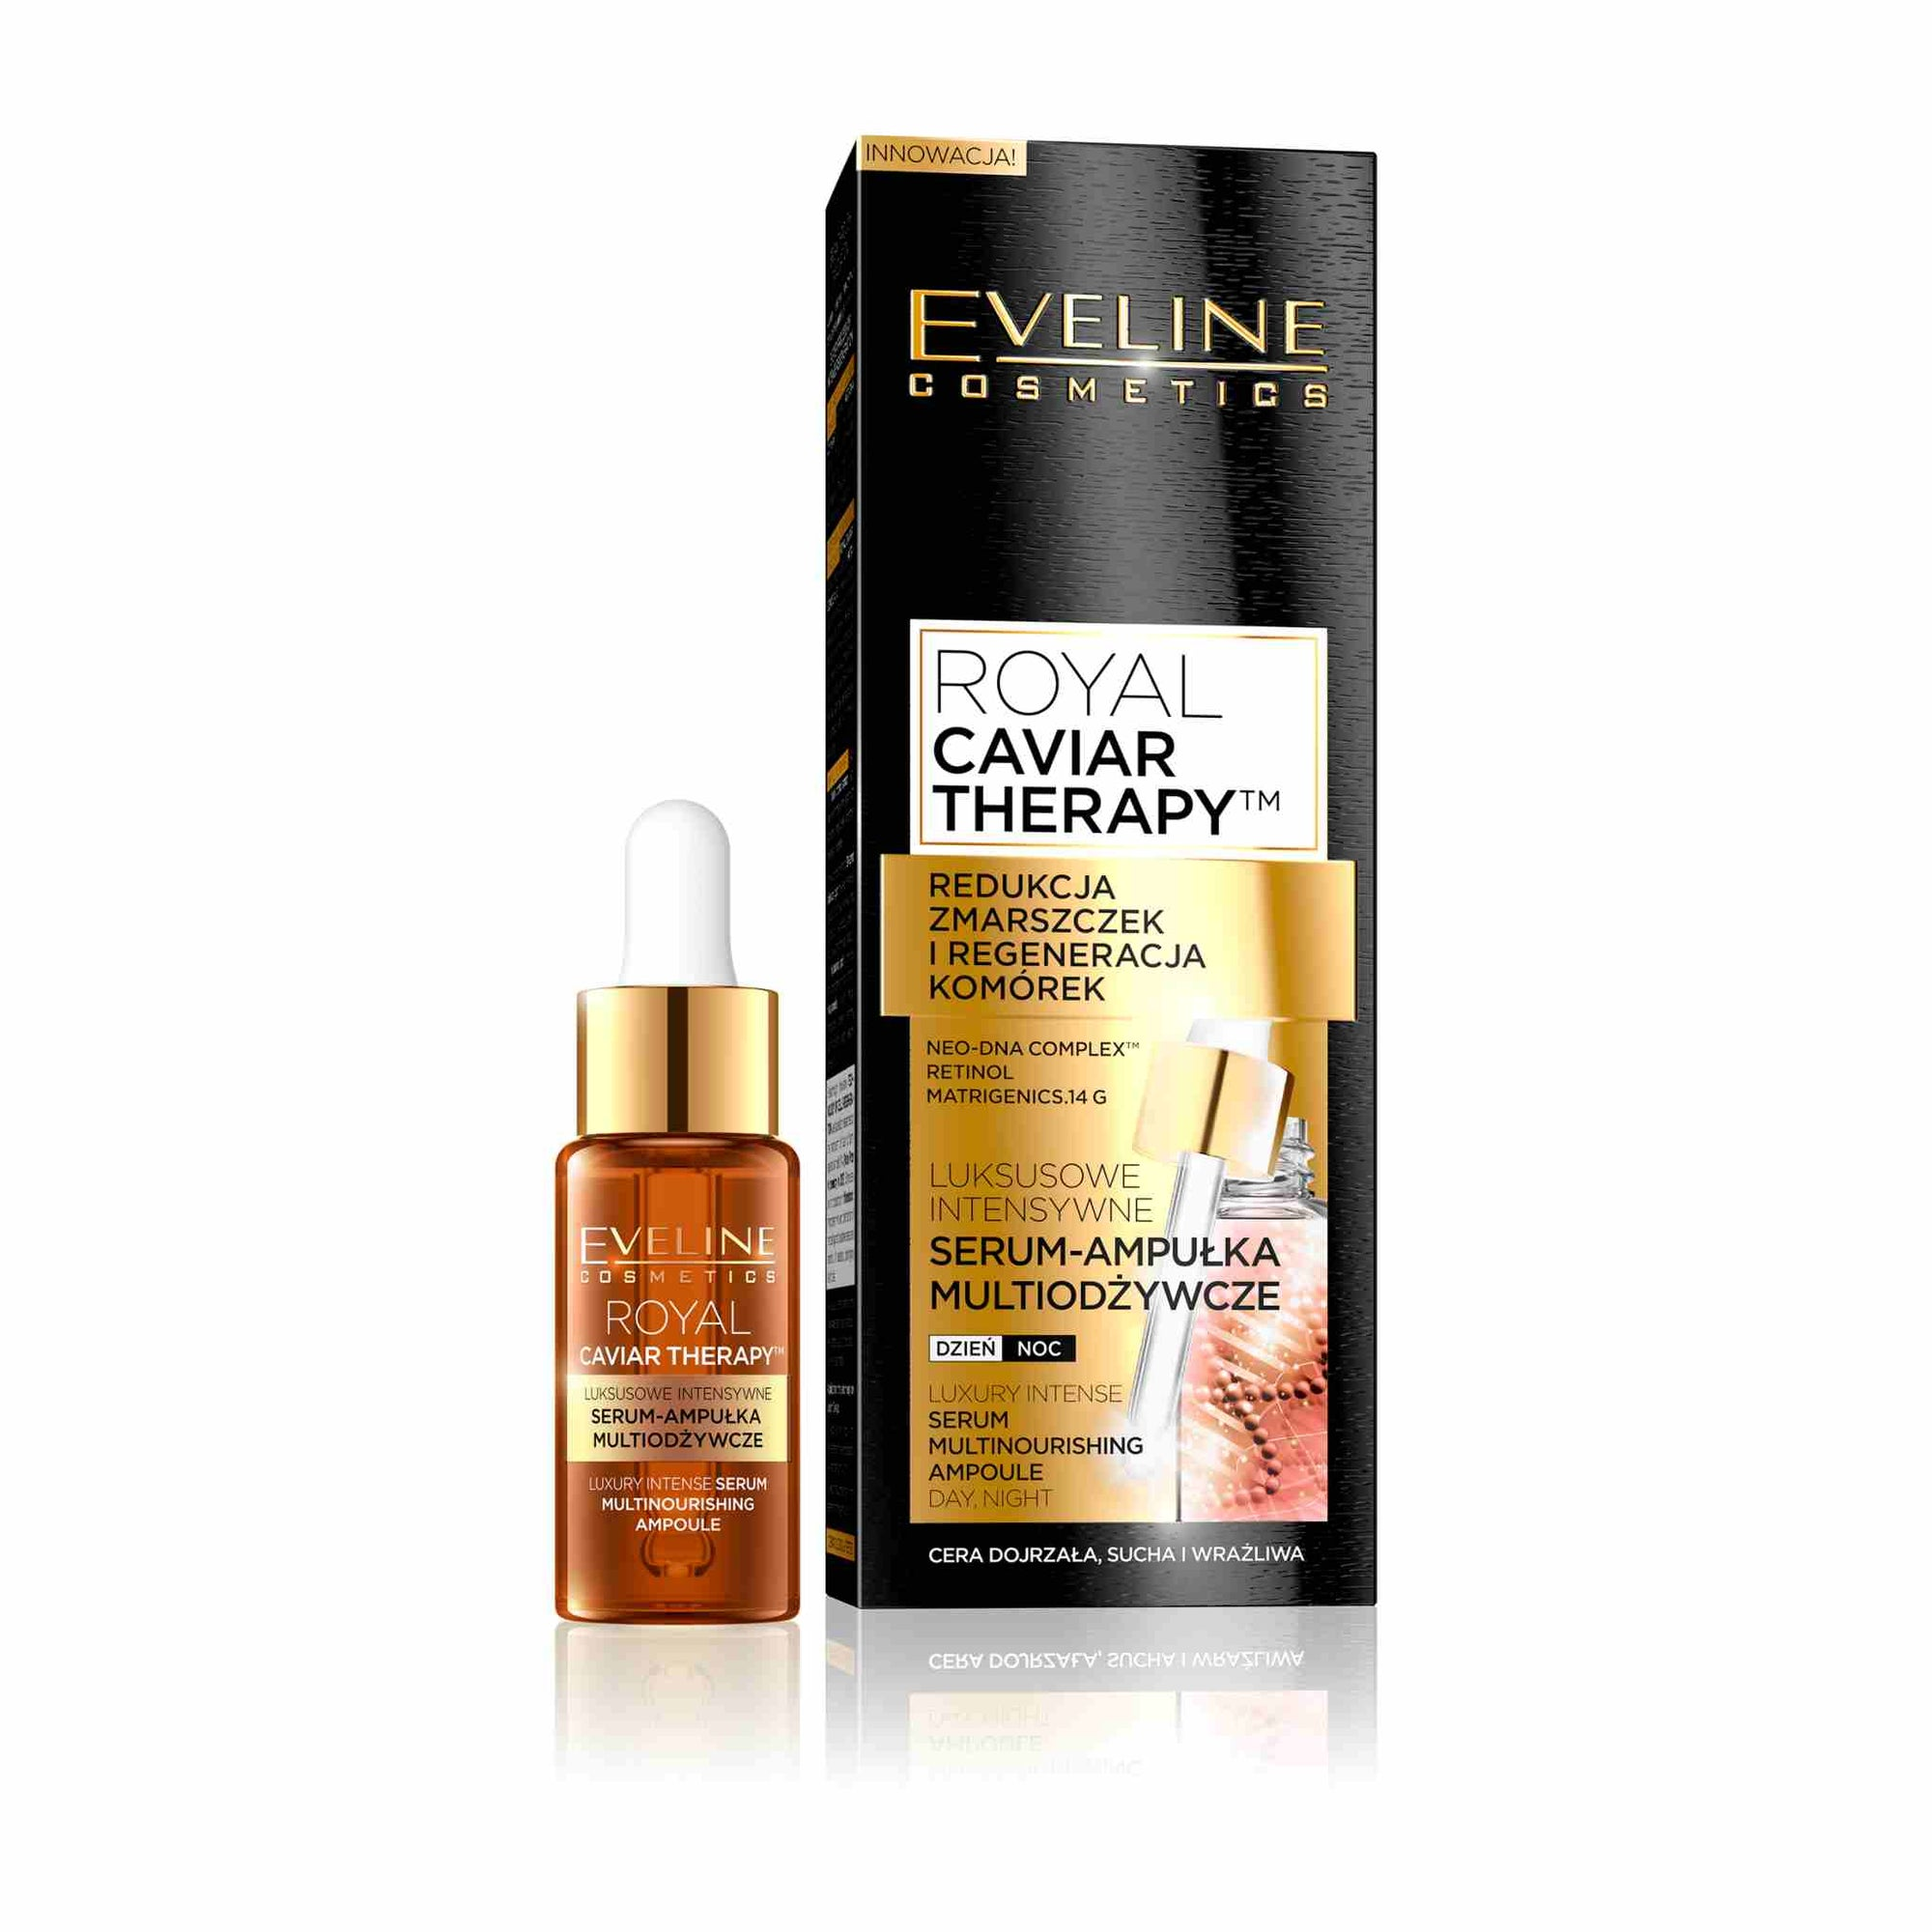 Royal Caviar Therapy Face Serum Ampoule Day and Night Cream